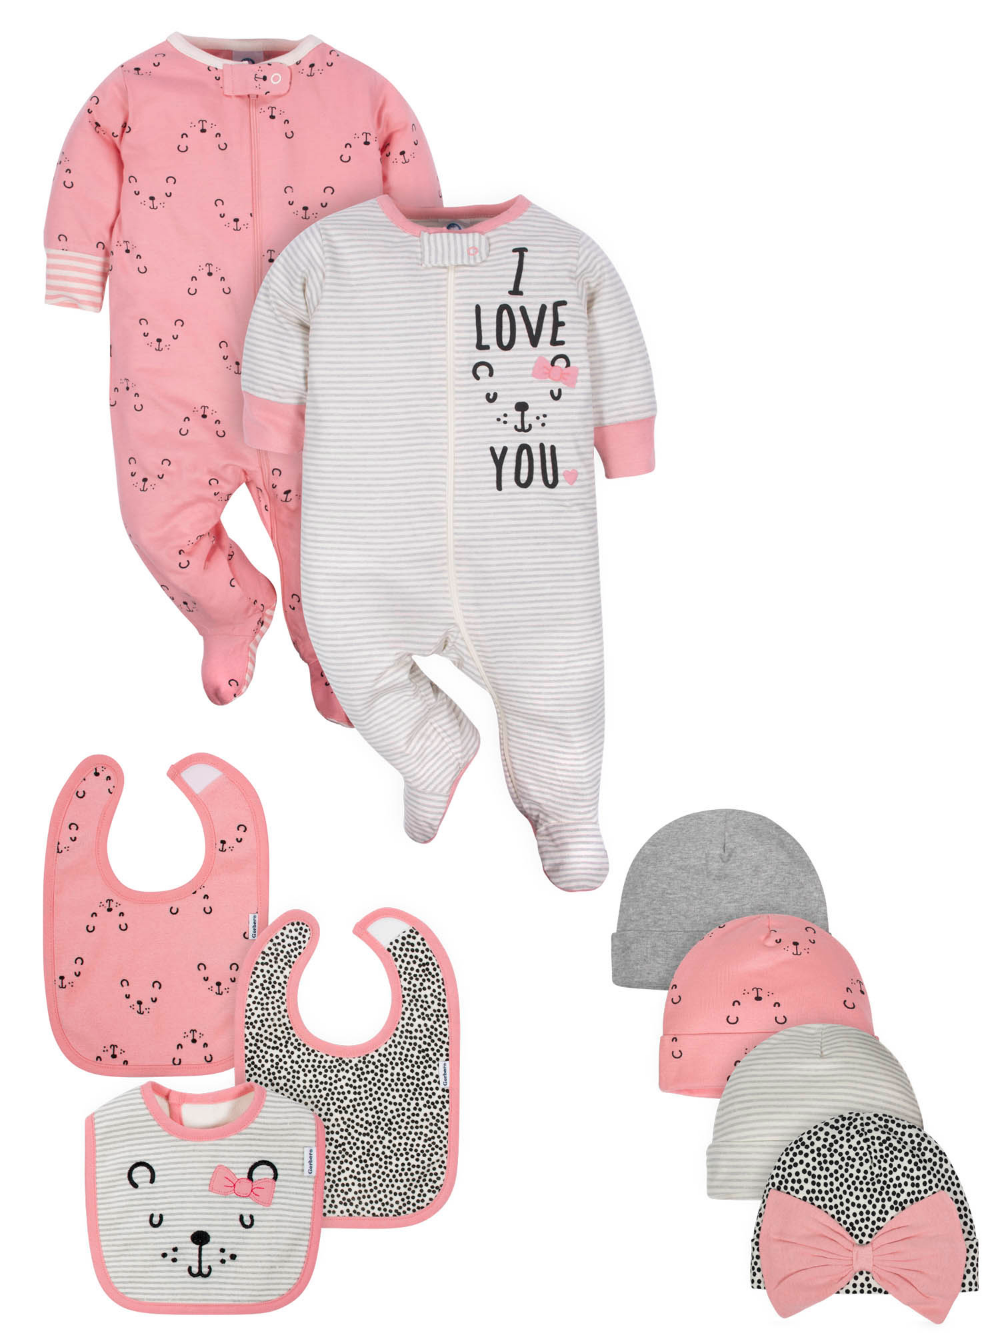 Clothing Baby dolls for sale, Baby girl pajamas, Baby